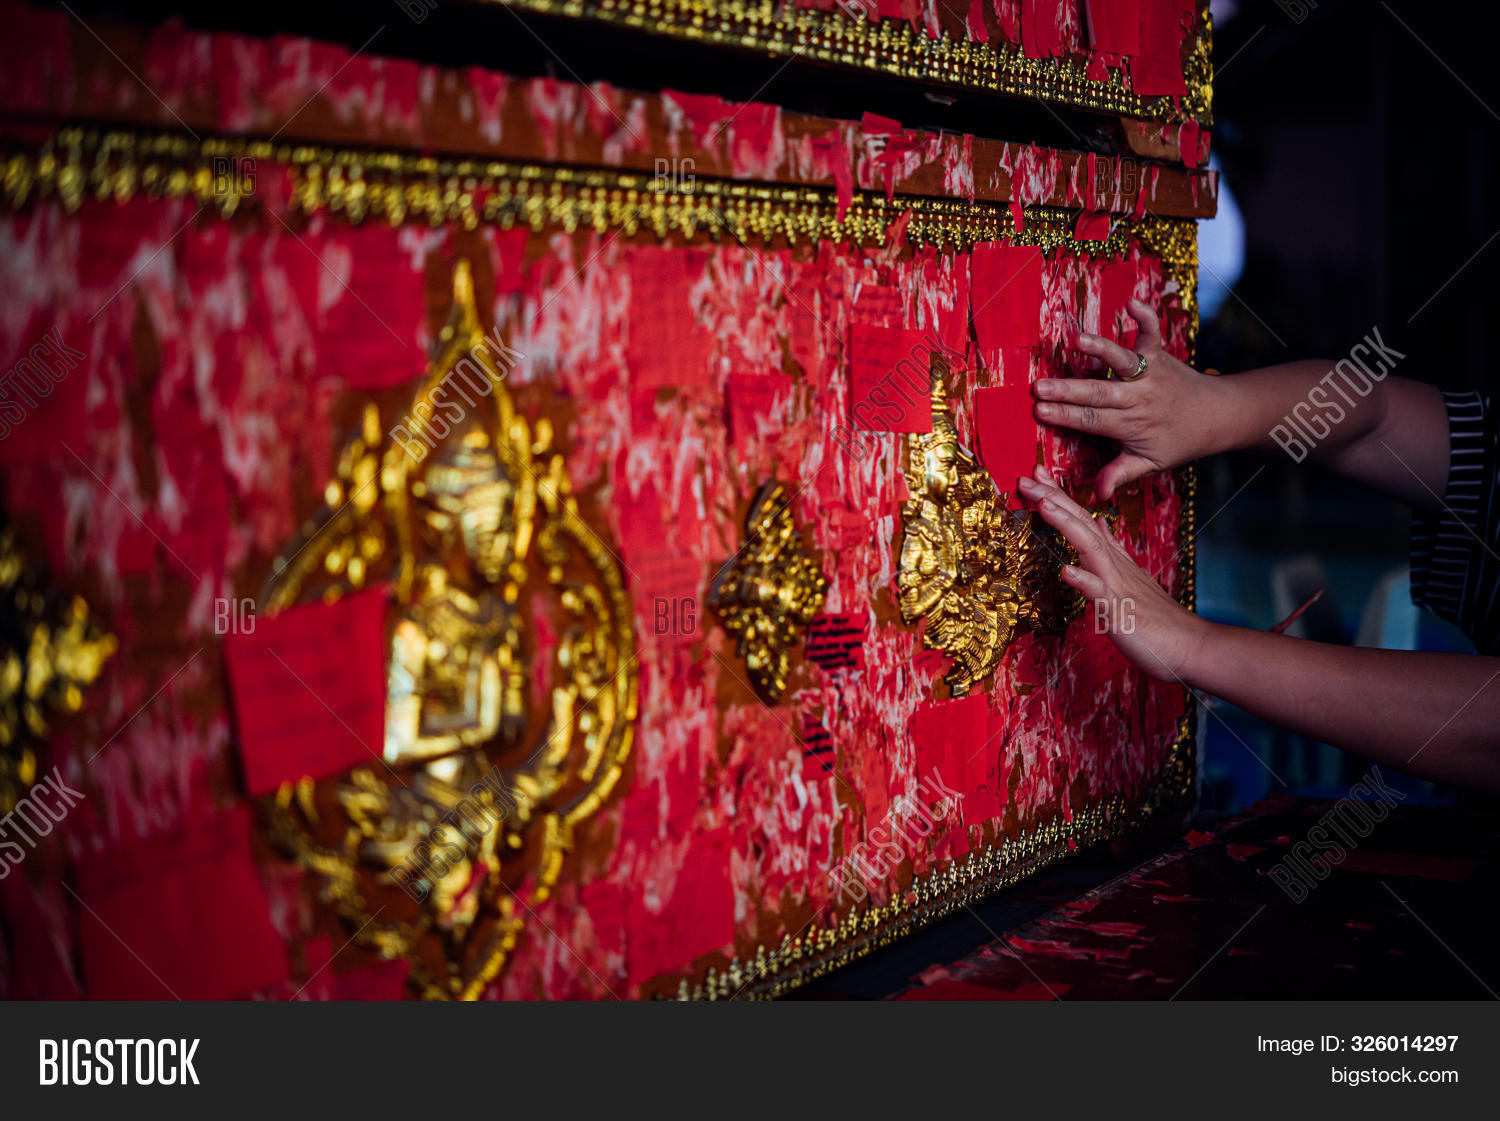 asia,asian,box,buddha,buddhism,buddhist,case,ceremony,closed,coffin,crate,culture,dark,dead,death,depression,donate,donation,ethnic,exotic,faith,female,folk,foundation,funeral,girl,grave,grief,holy,incense,intend,pray,prayer,religion,religious,rest,sacred,sacrifice,sad,shrine,spirit,temple,thai,thailand,tomb,wat,woman,wood,wooden,worship